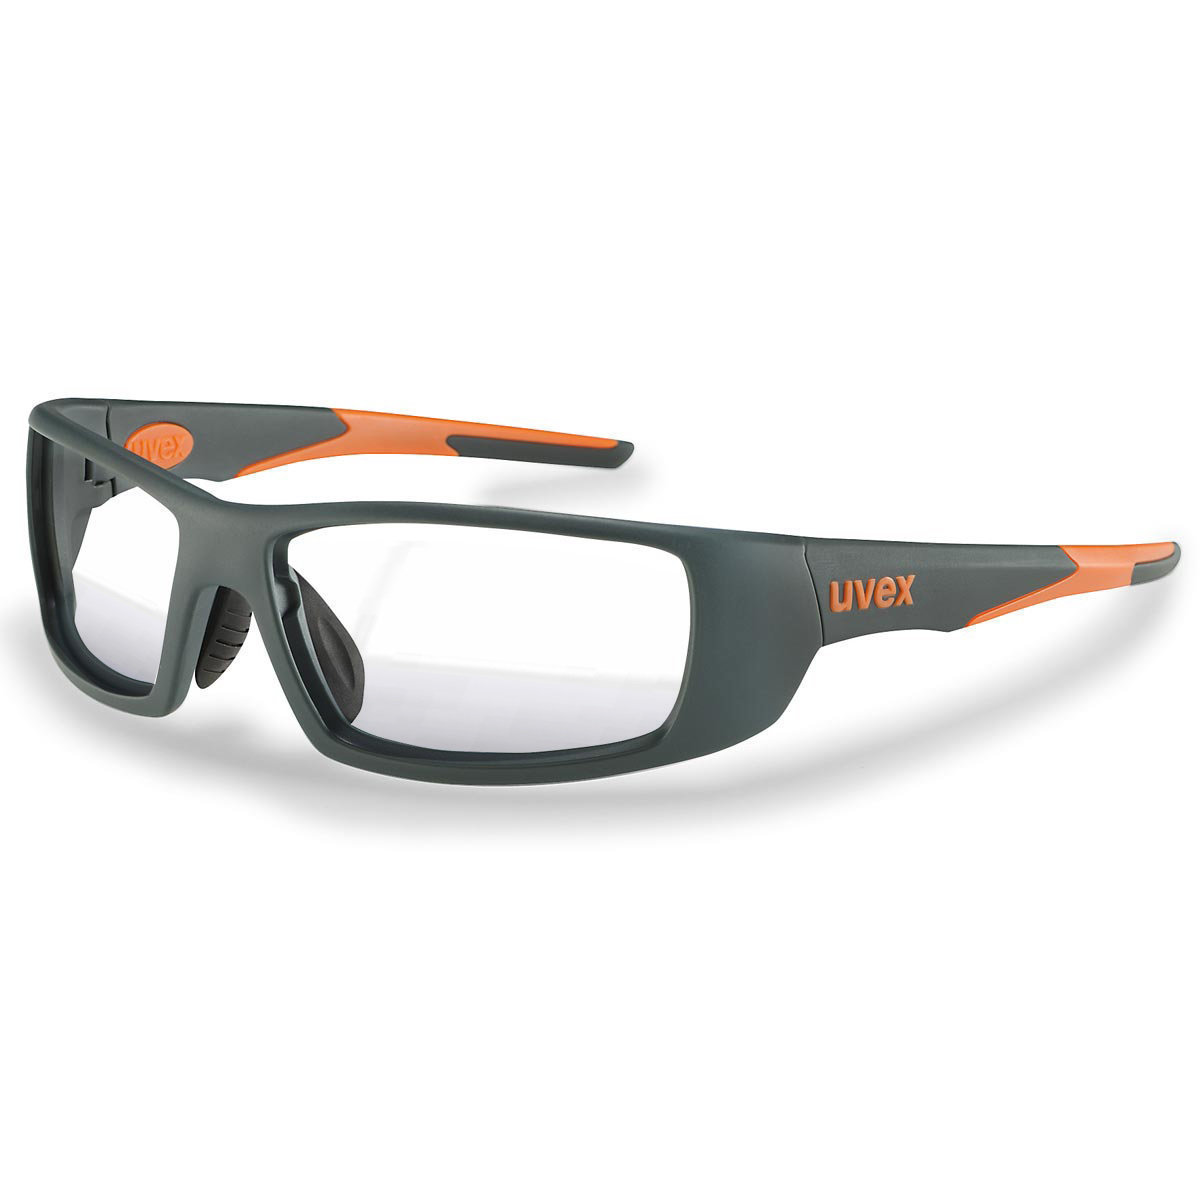 Uvex Korrektionsschutzbrille RX sp 5512 orange - UV blue protect